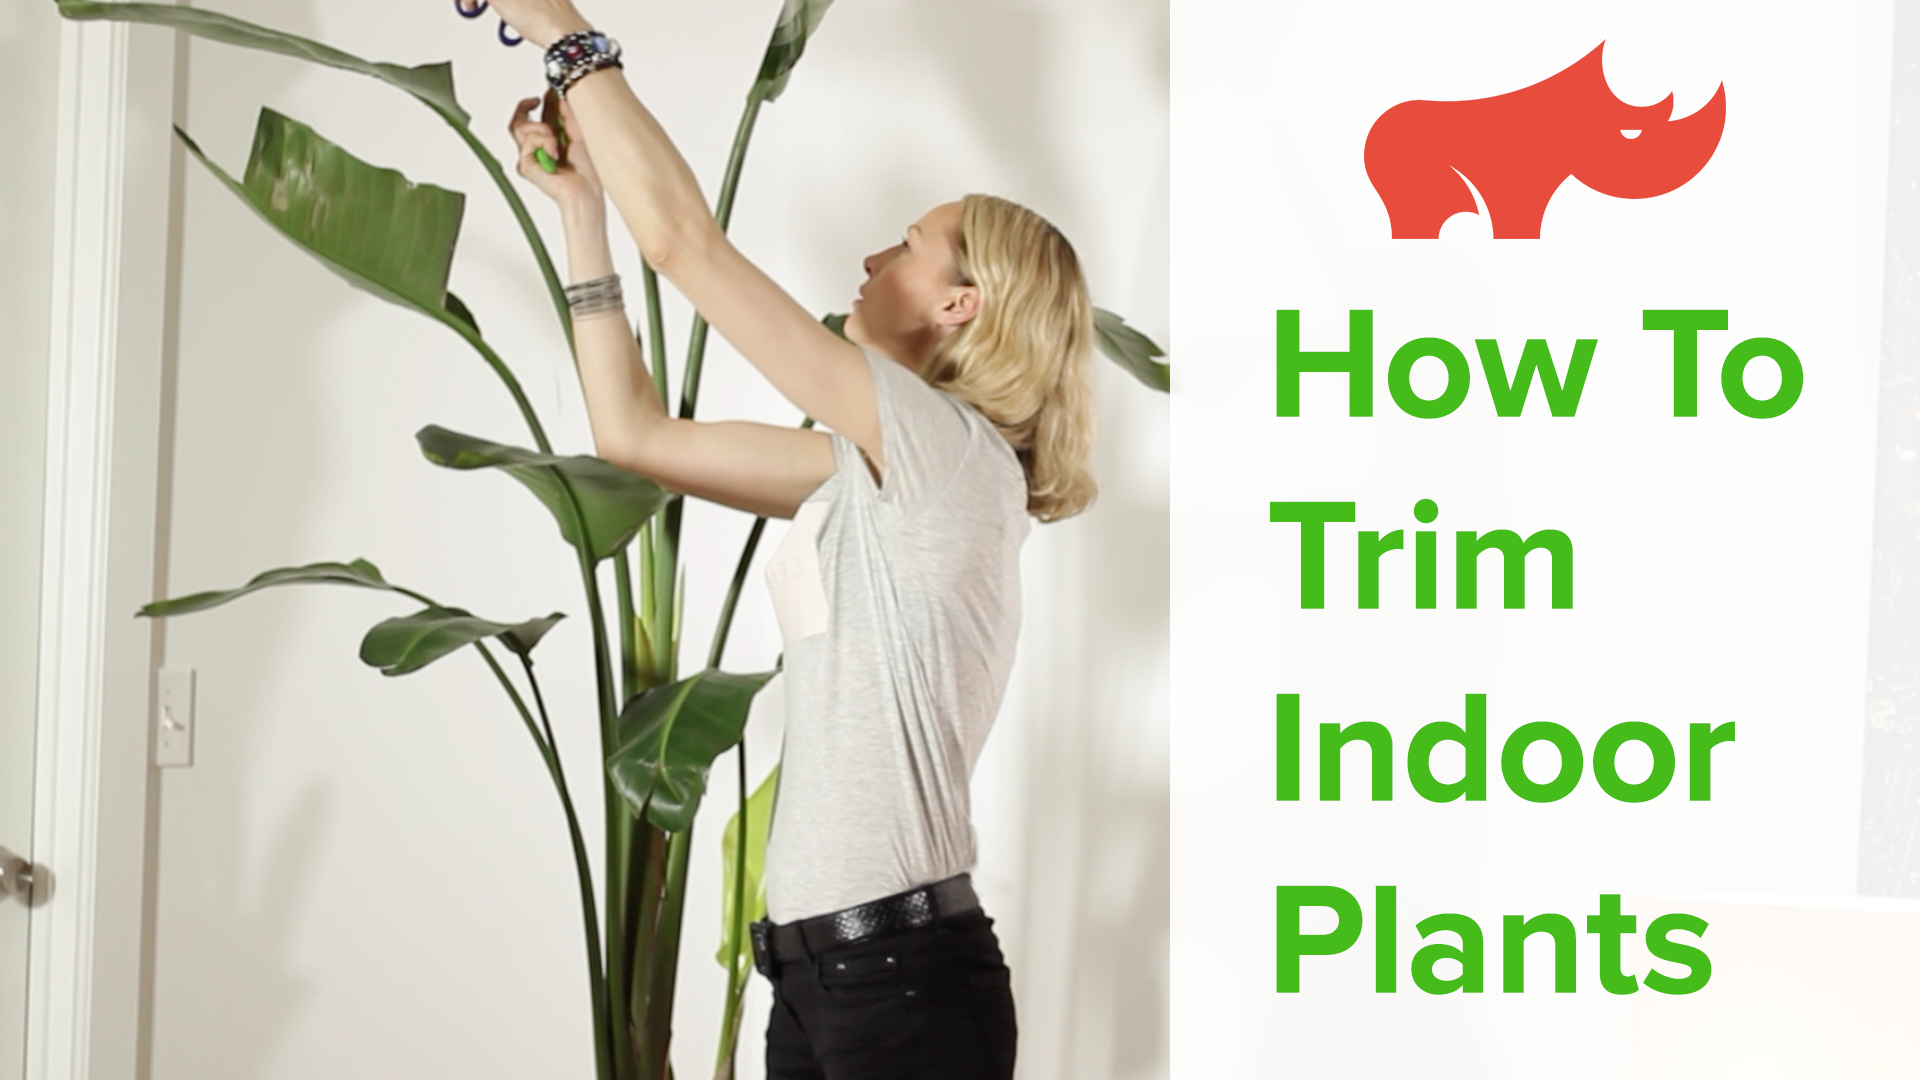 How to trim indoor plants